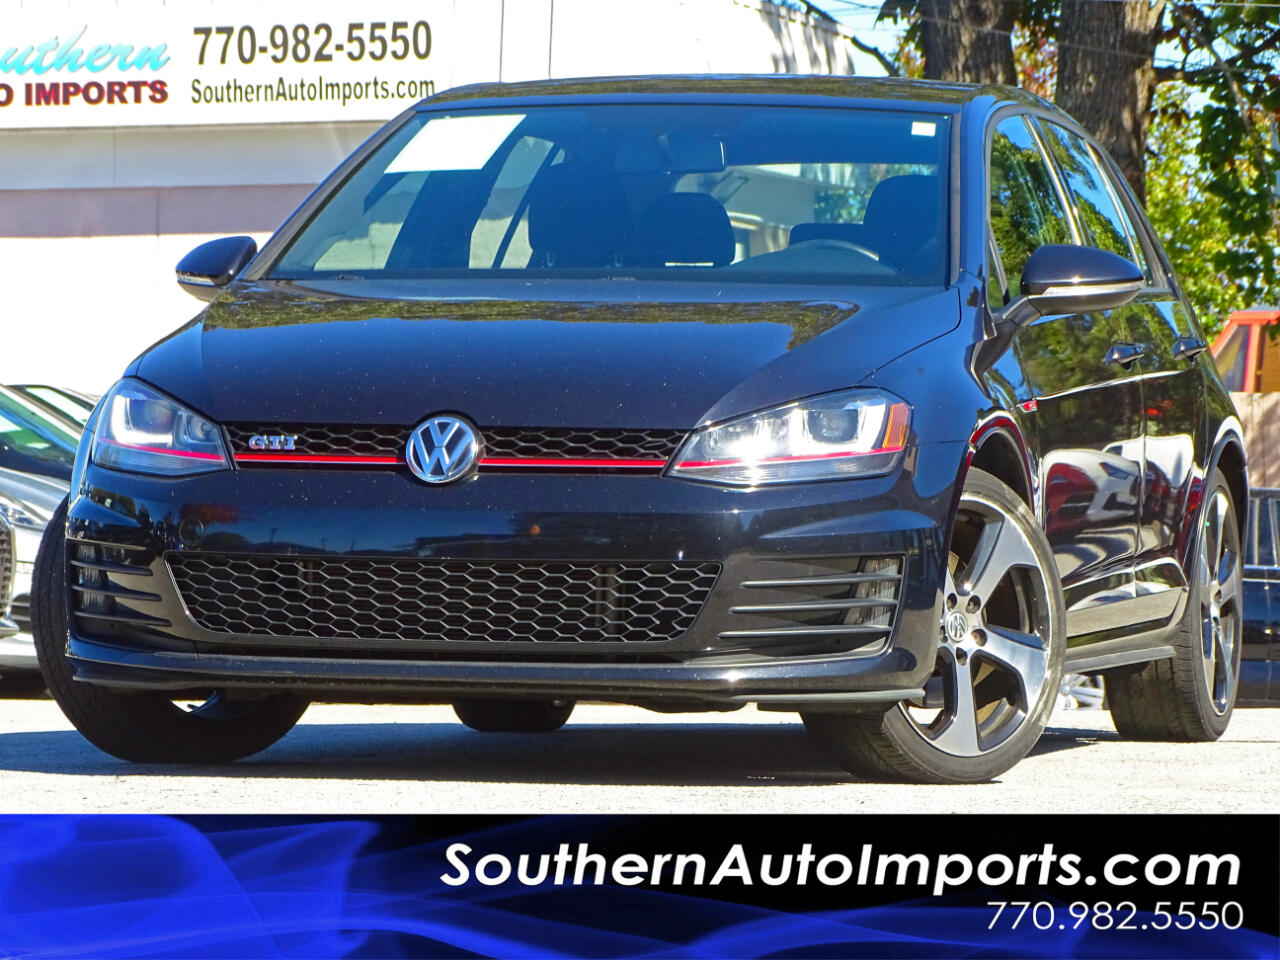 2015 Volkswagen Golf GTI GTI S Xenon Headlights Back up Camera